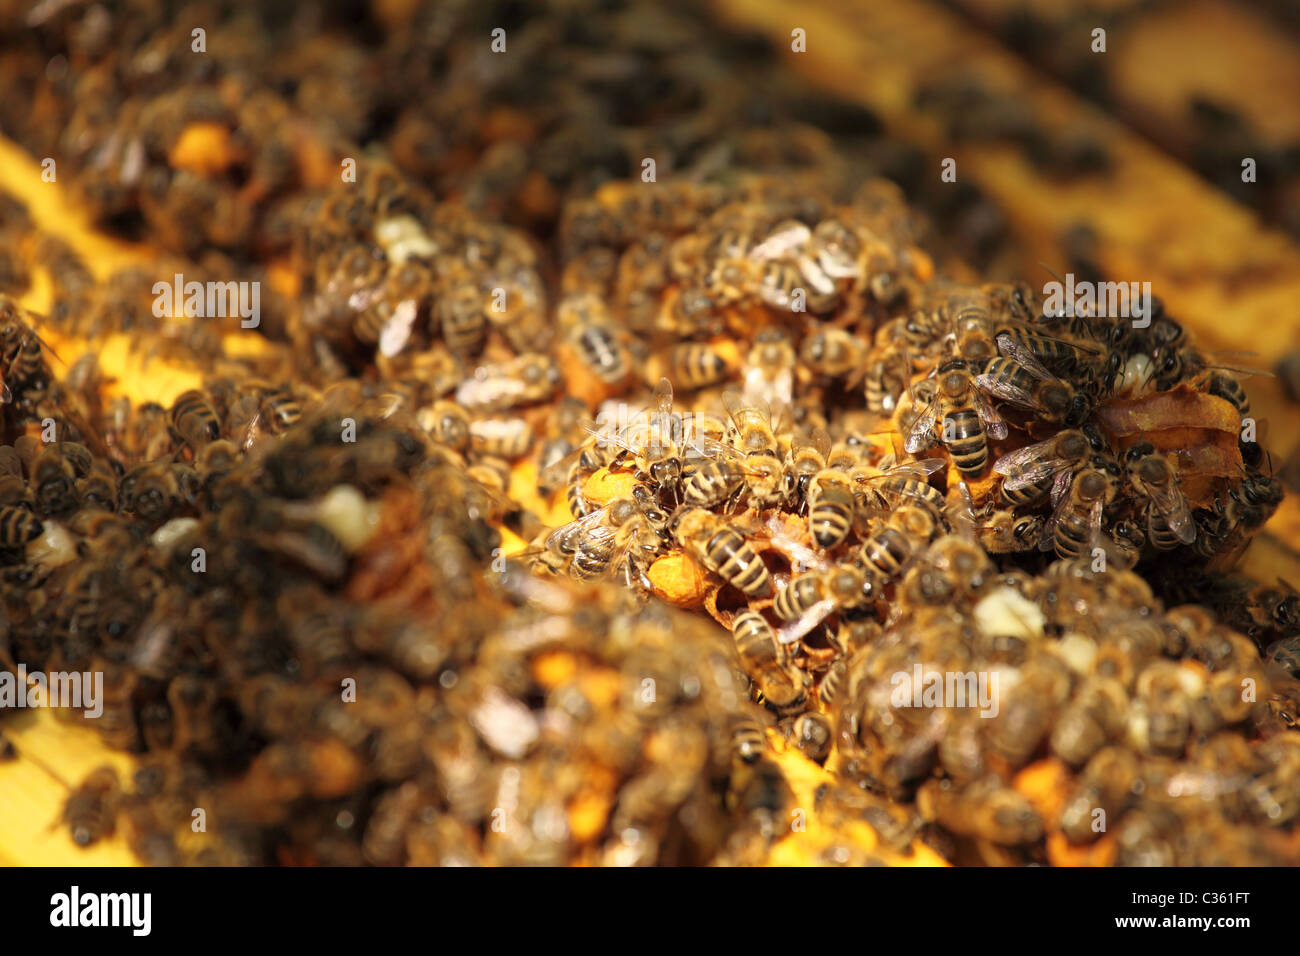 Colony of Western honey bees in the bee hive. - Stock Image